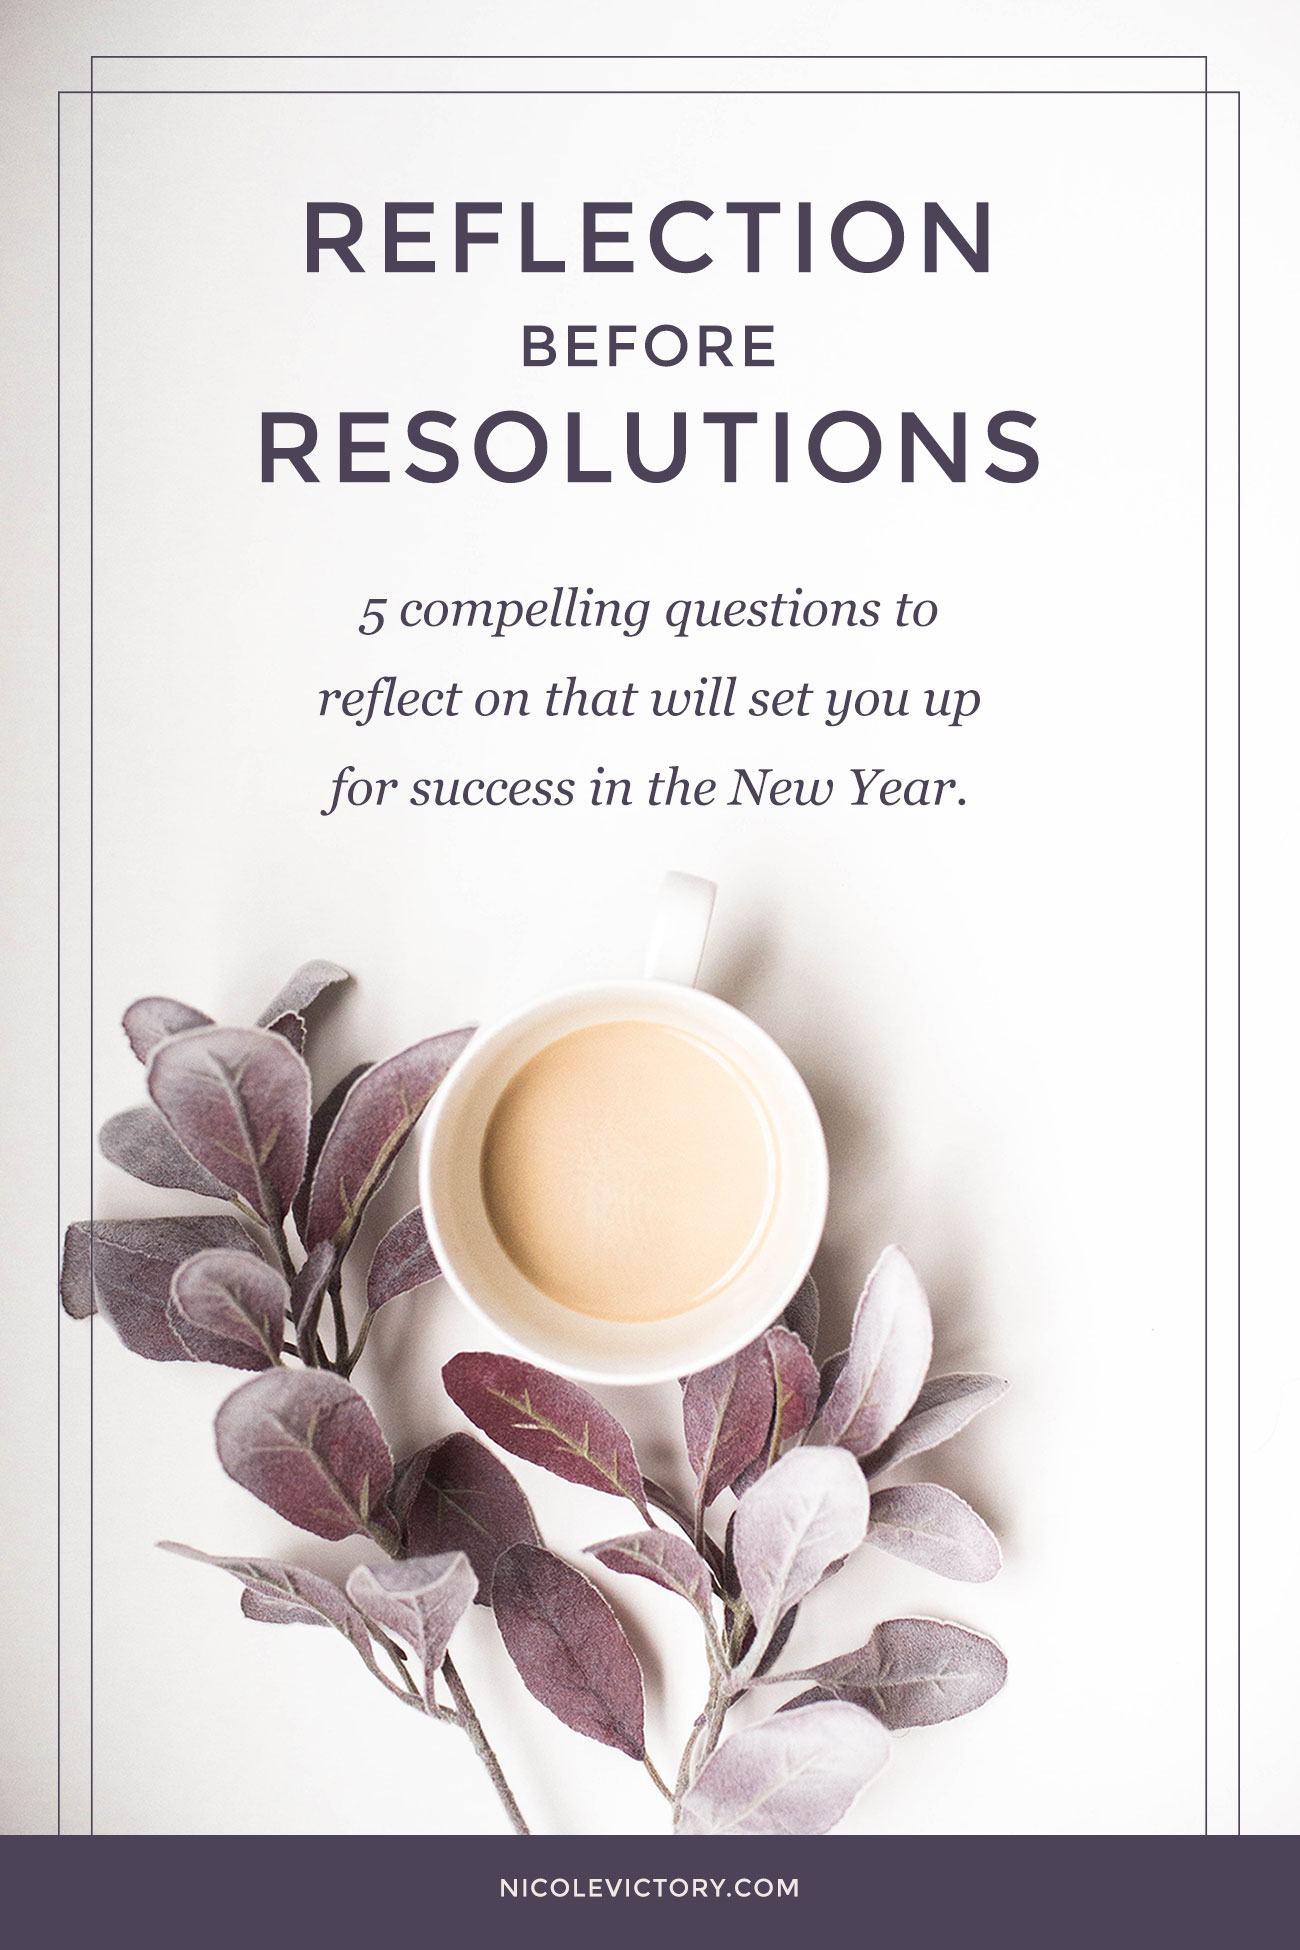 Reflection Before Resolutions: 5 compelling questions to reflect on that will set you up for success in the New Year.Business Up for Success in the New Year   Nicole Victory Design